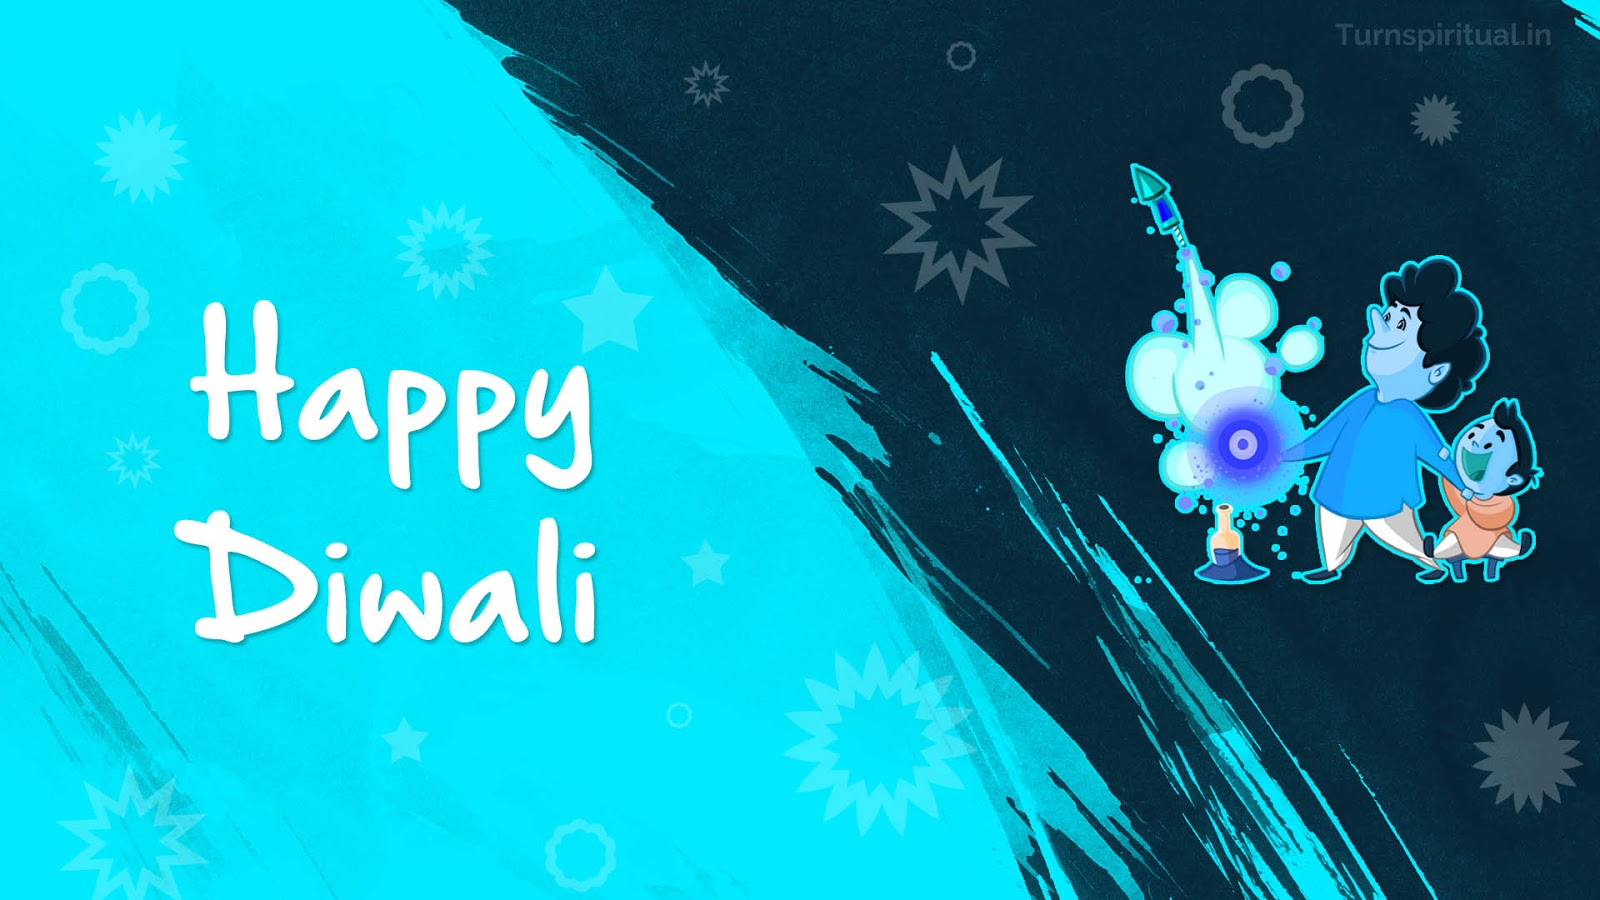 10 colorful diwali special greeting card free wallpaper happy 10 colorful diwali special greeting card free wallpaper happy diwali pic 2016 kristyandbryce Images